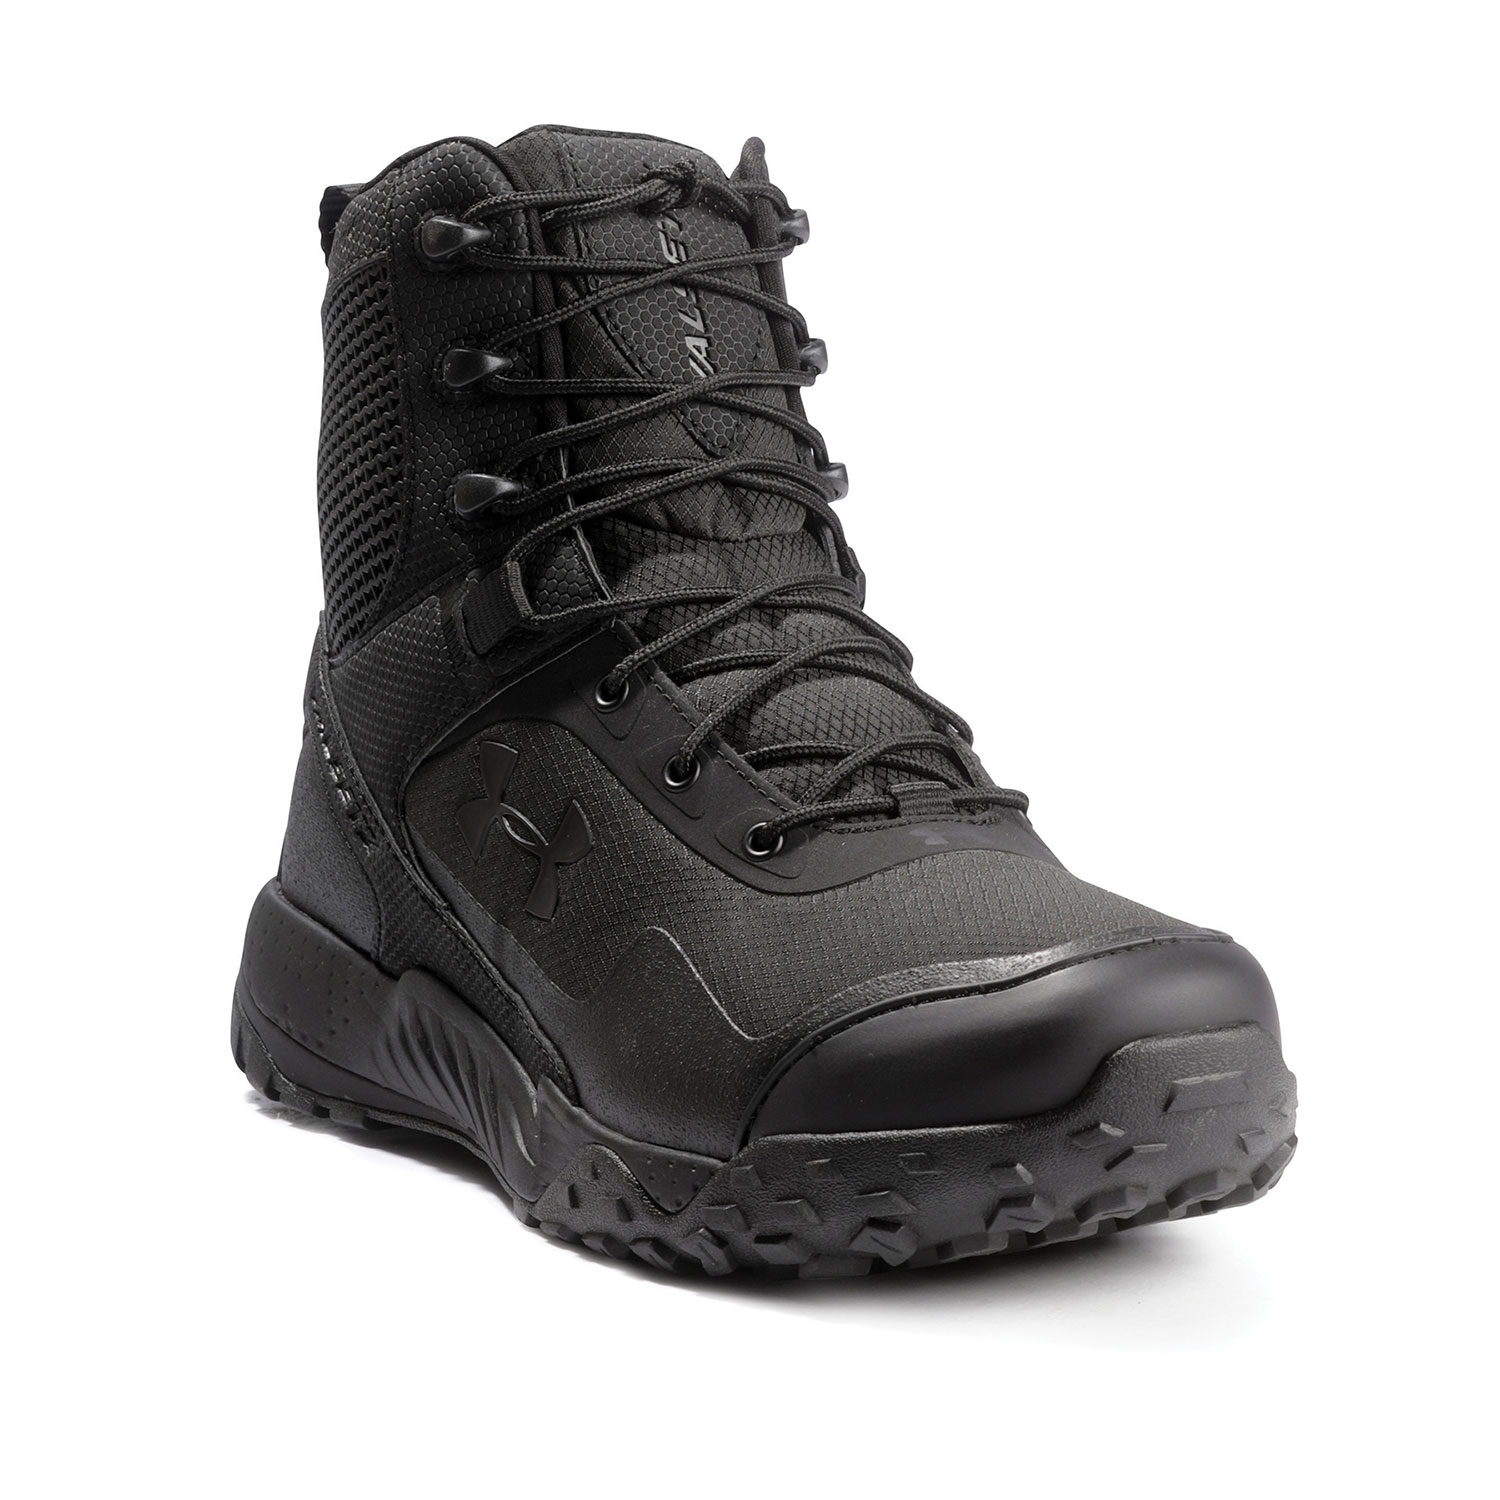 13f1c94edf82f2 Under Armour Valsetz RTS 1.5 Side-Zip Tactical Boot